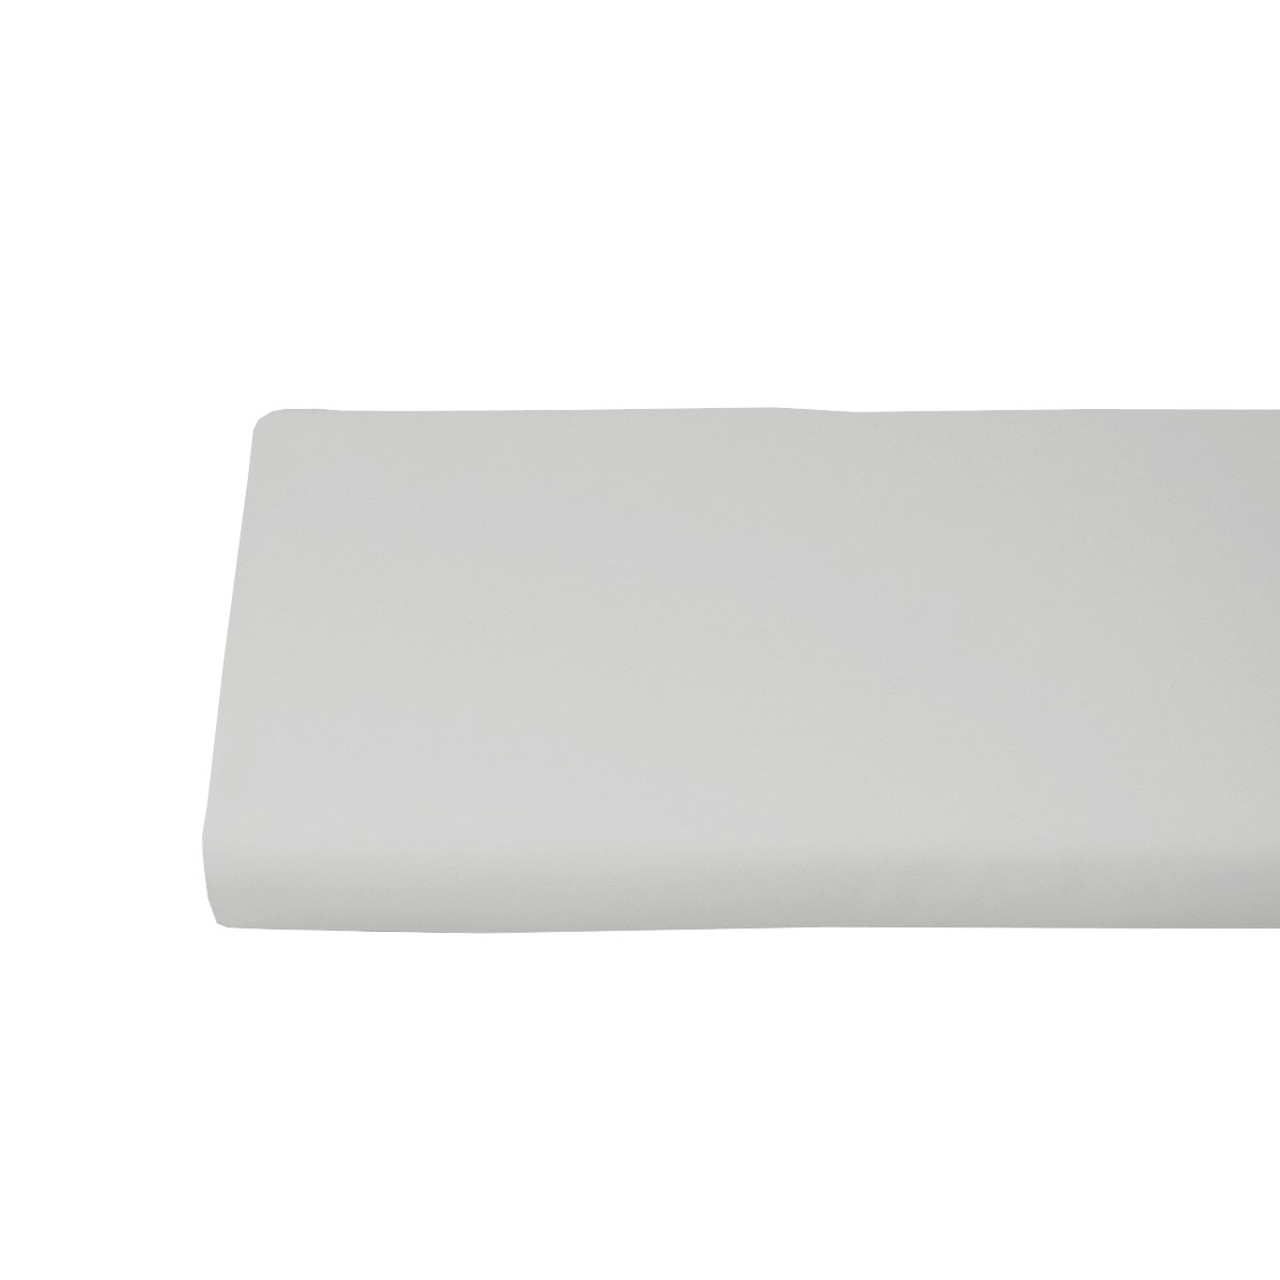 King Size Fitted Sheet 100 Bamboo Viscose 600 Thread